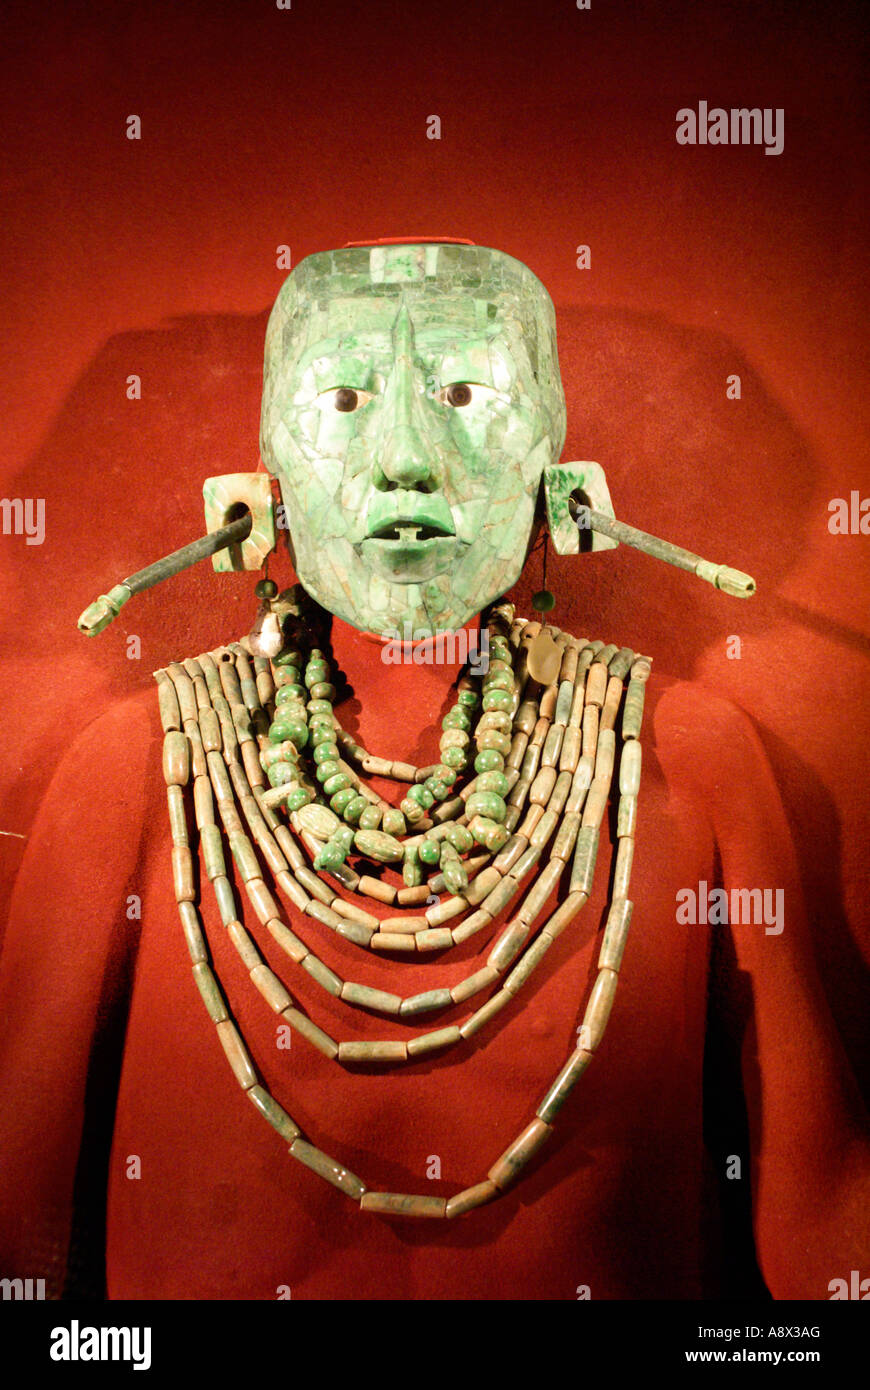 replica-of-lord-pakals-jade-death-mask-a